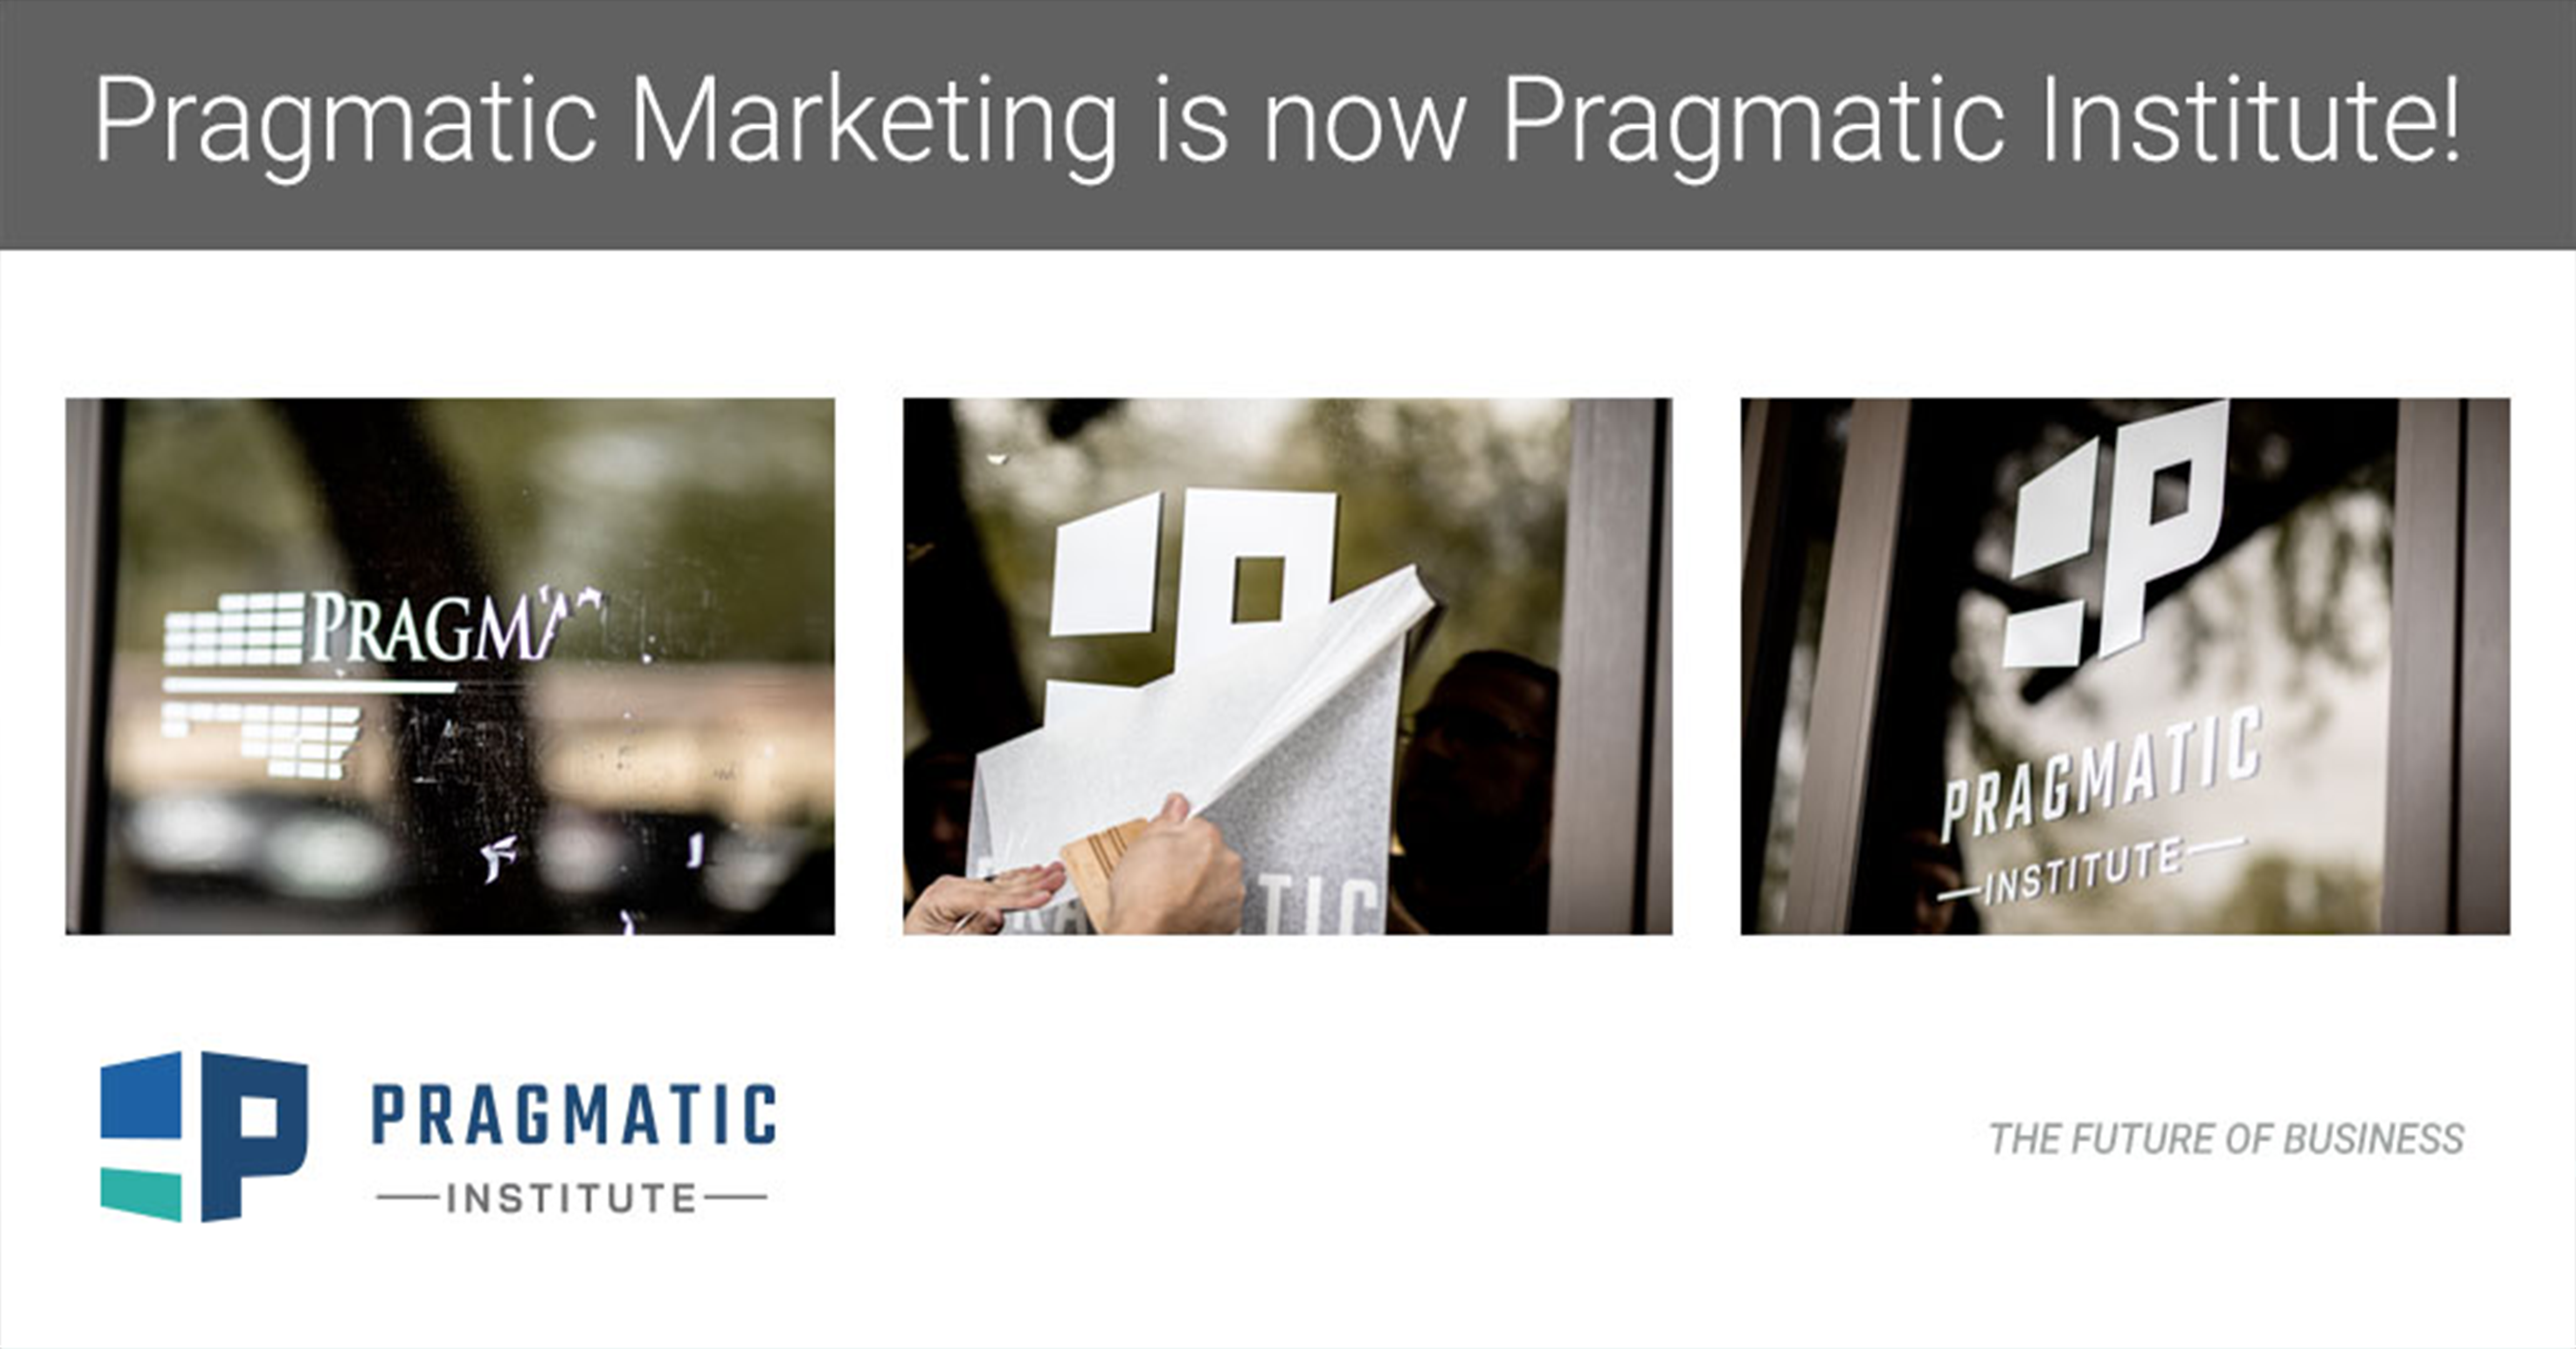 Introducing Pragmatic Institute